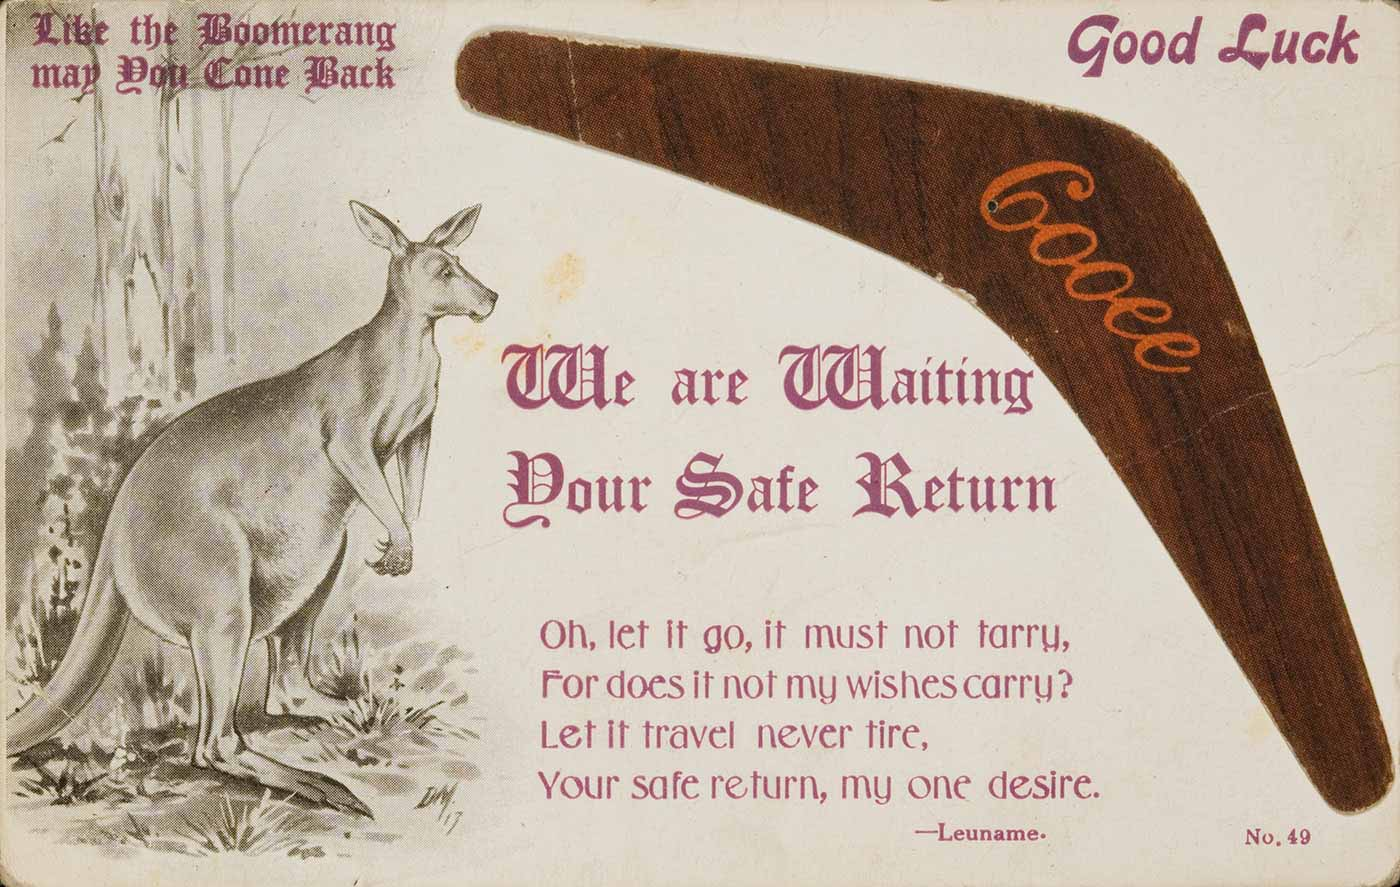 Postcard with an illustration of a kangaroo in the bush at left and a brown boomerang with the word 'Cooee' written on it at right. 'Like the Boomerang may you Come Back' is written in the top left and 'Good Luck' in the top right of the card. 'We are Waiting for Your Safe Return' is written in larger text in the middle of the card. A verse attributed to 'Leuname' also appears. - click to view larger image